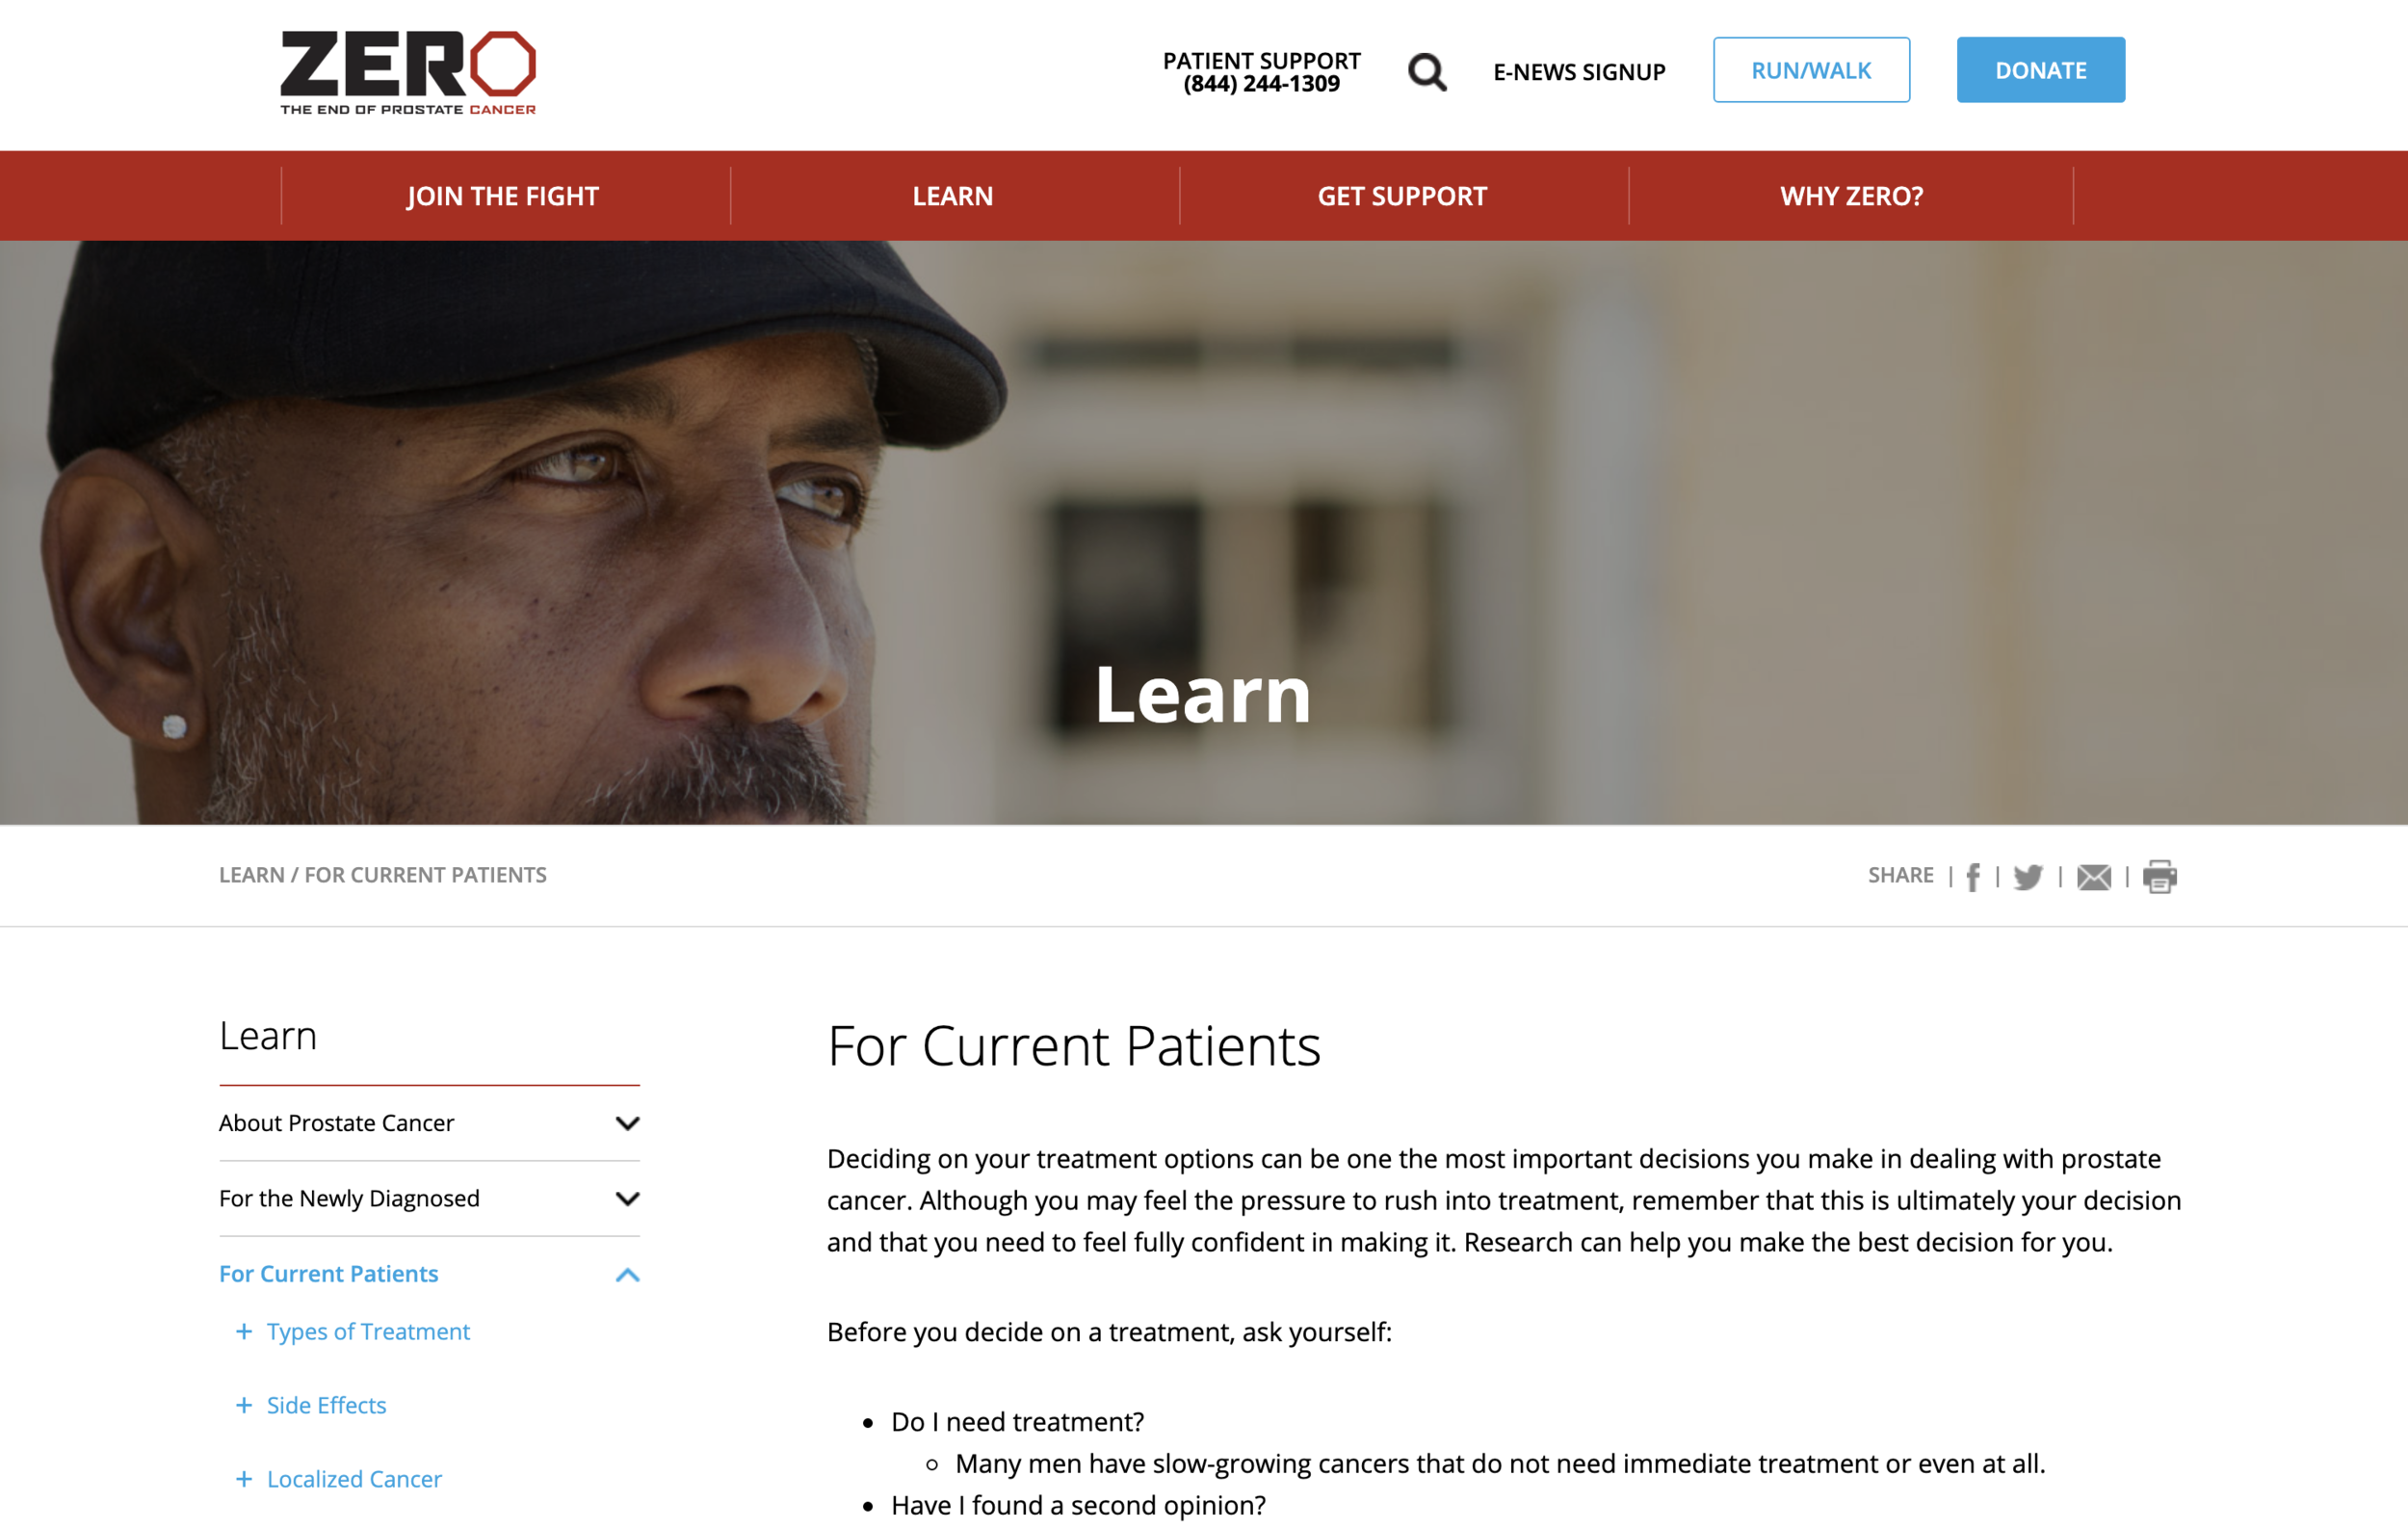 ZERO - The End of Prostate Cancer